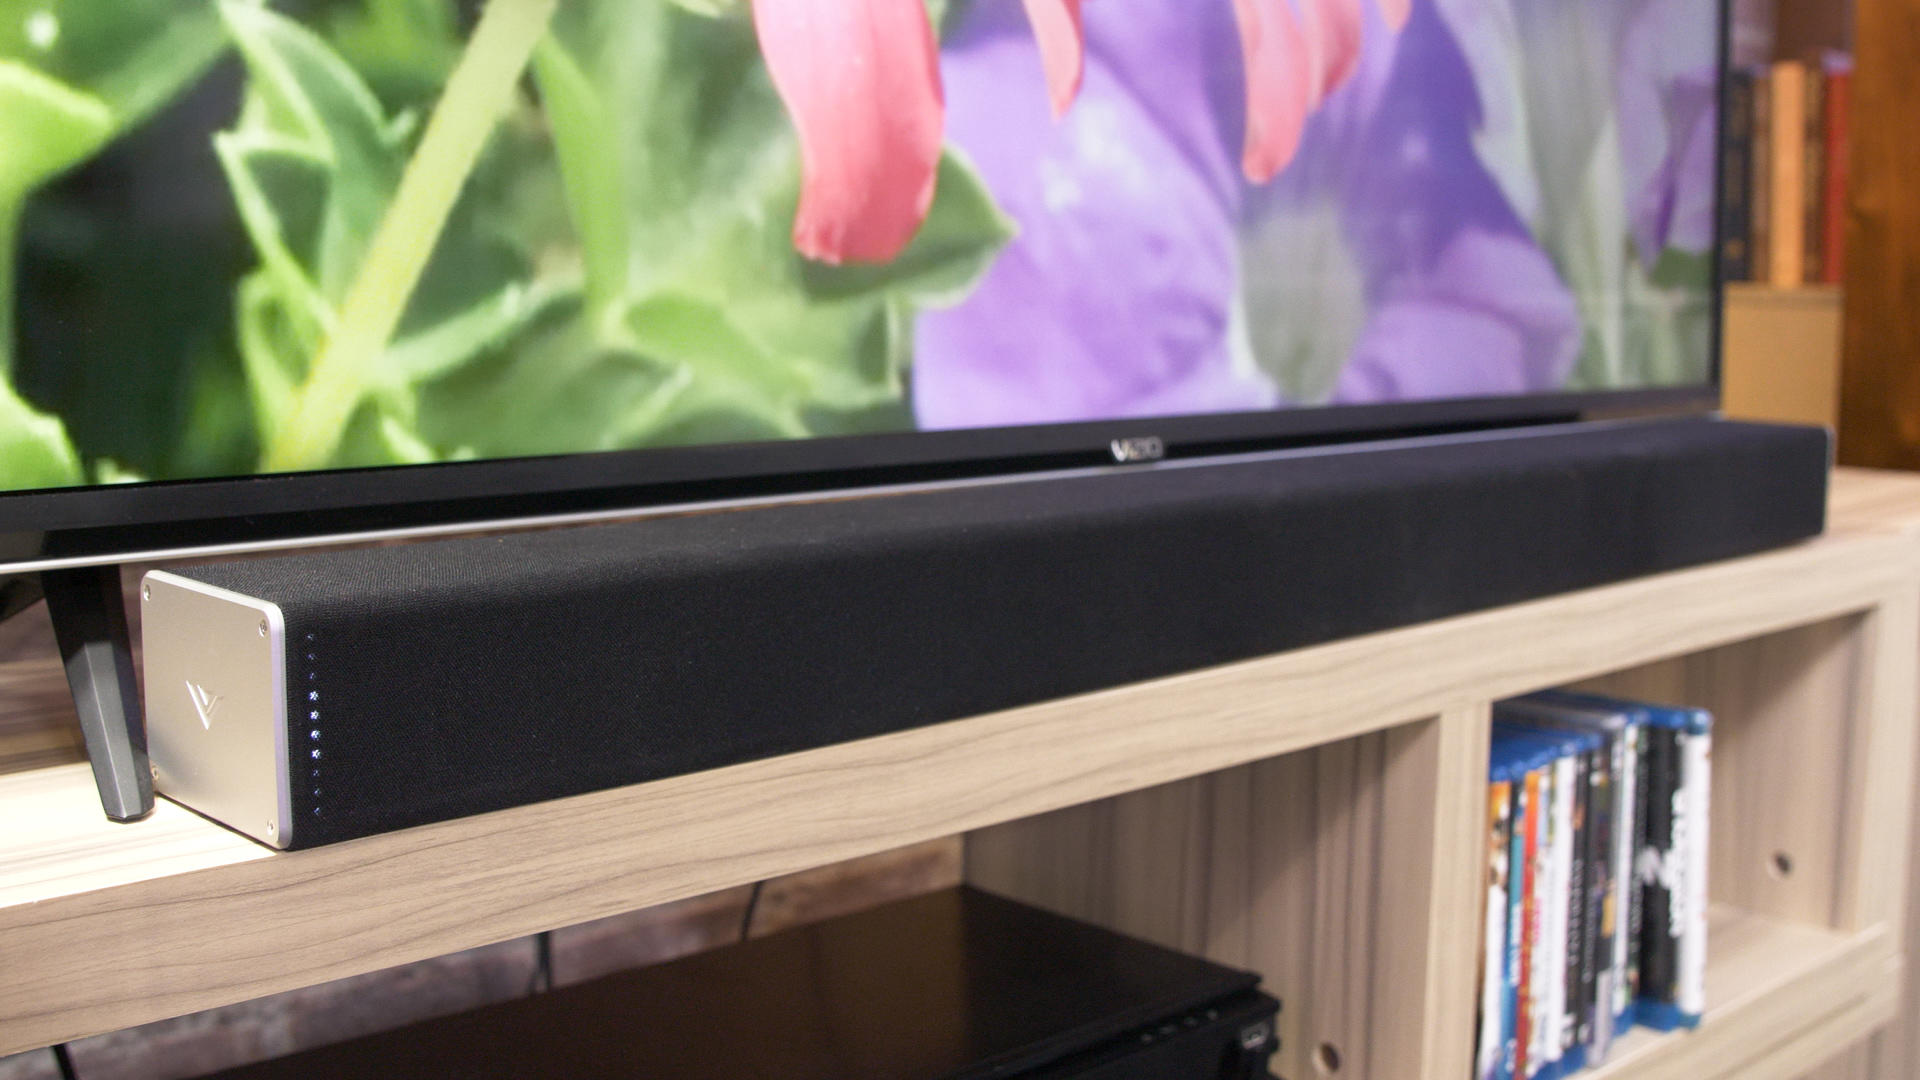 Video: Vizio's $500 Atmos sound bar is the one to buy